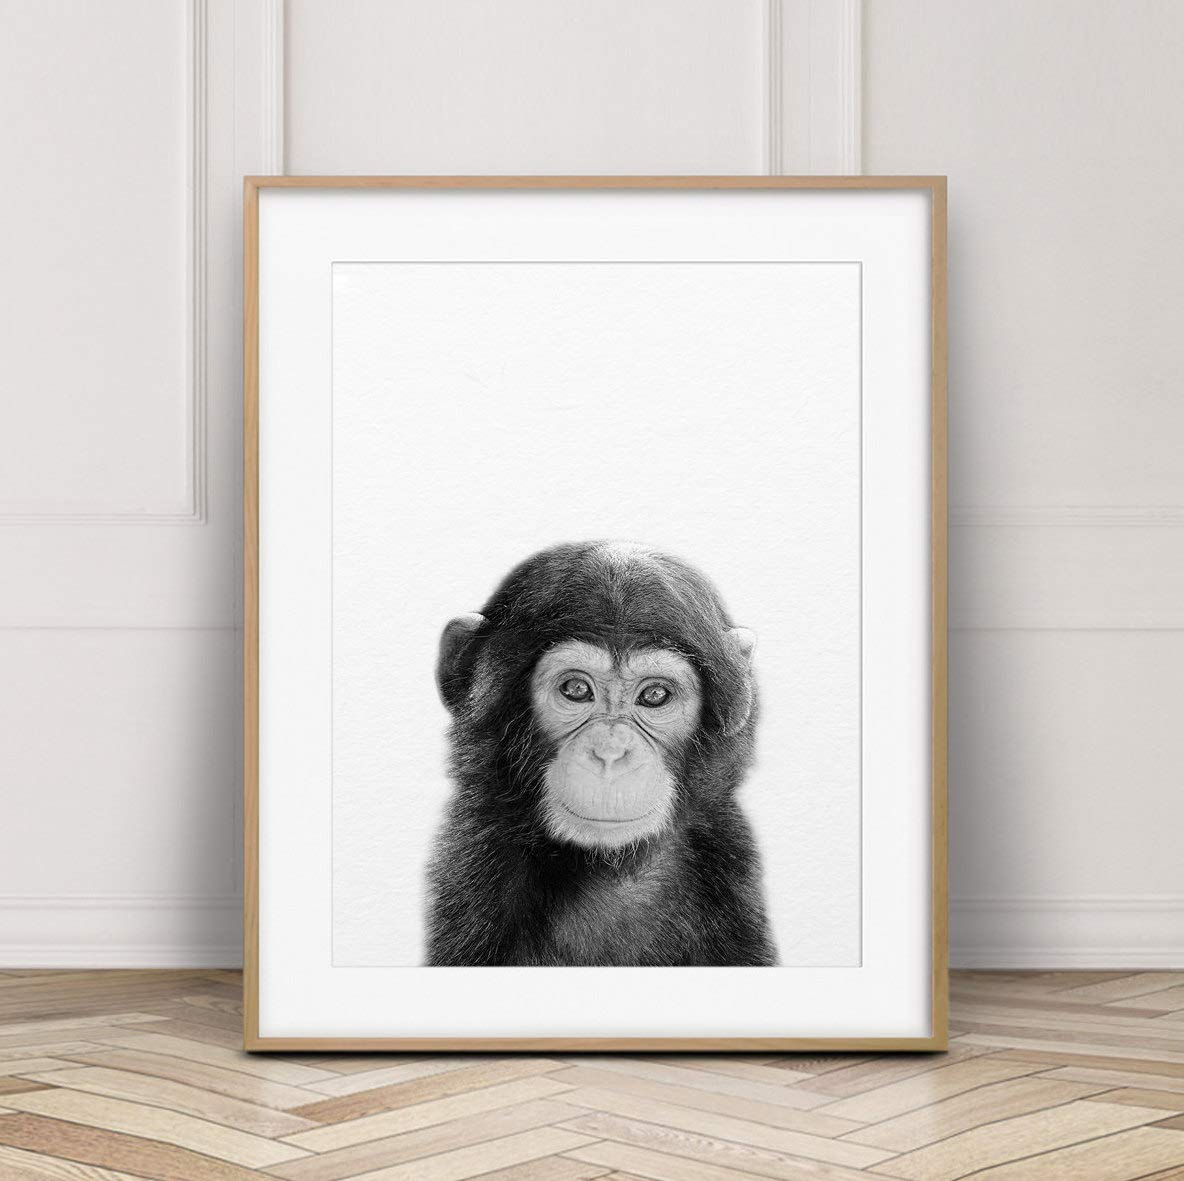 MalertaART Baby Monkey Print Jungle Animal Wall Art Nursery Decor Cute Baby Chimpanzee Photo Black And White Animal Print Kids Room Printable Art Framed Wall Art